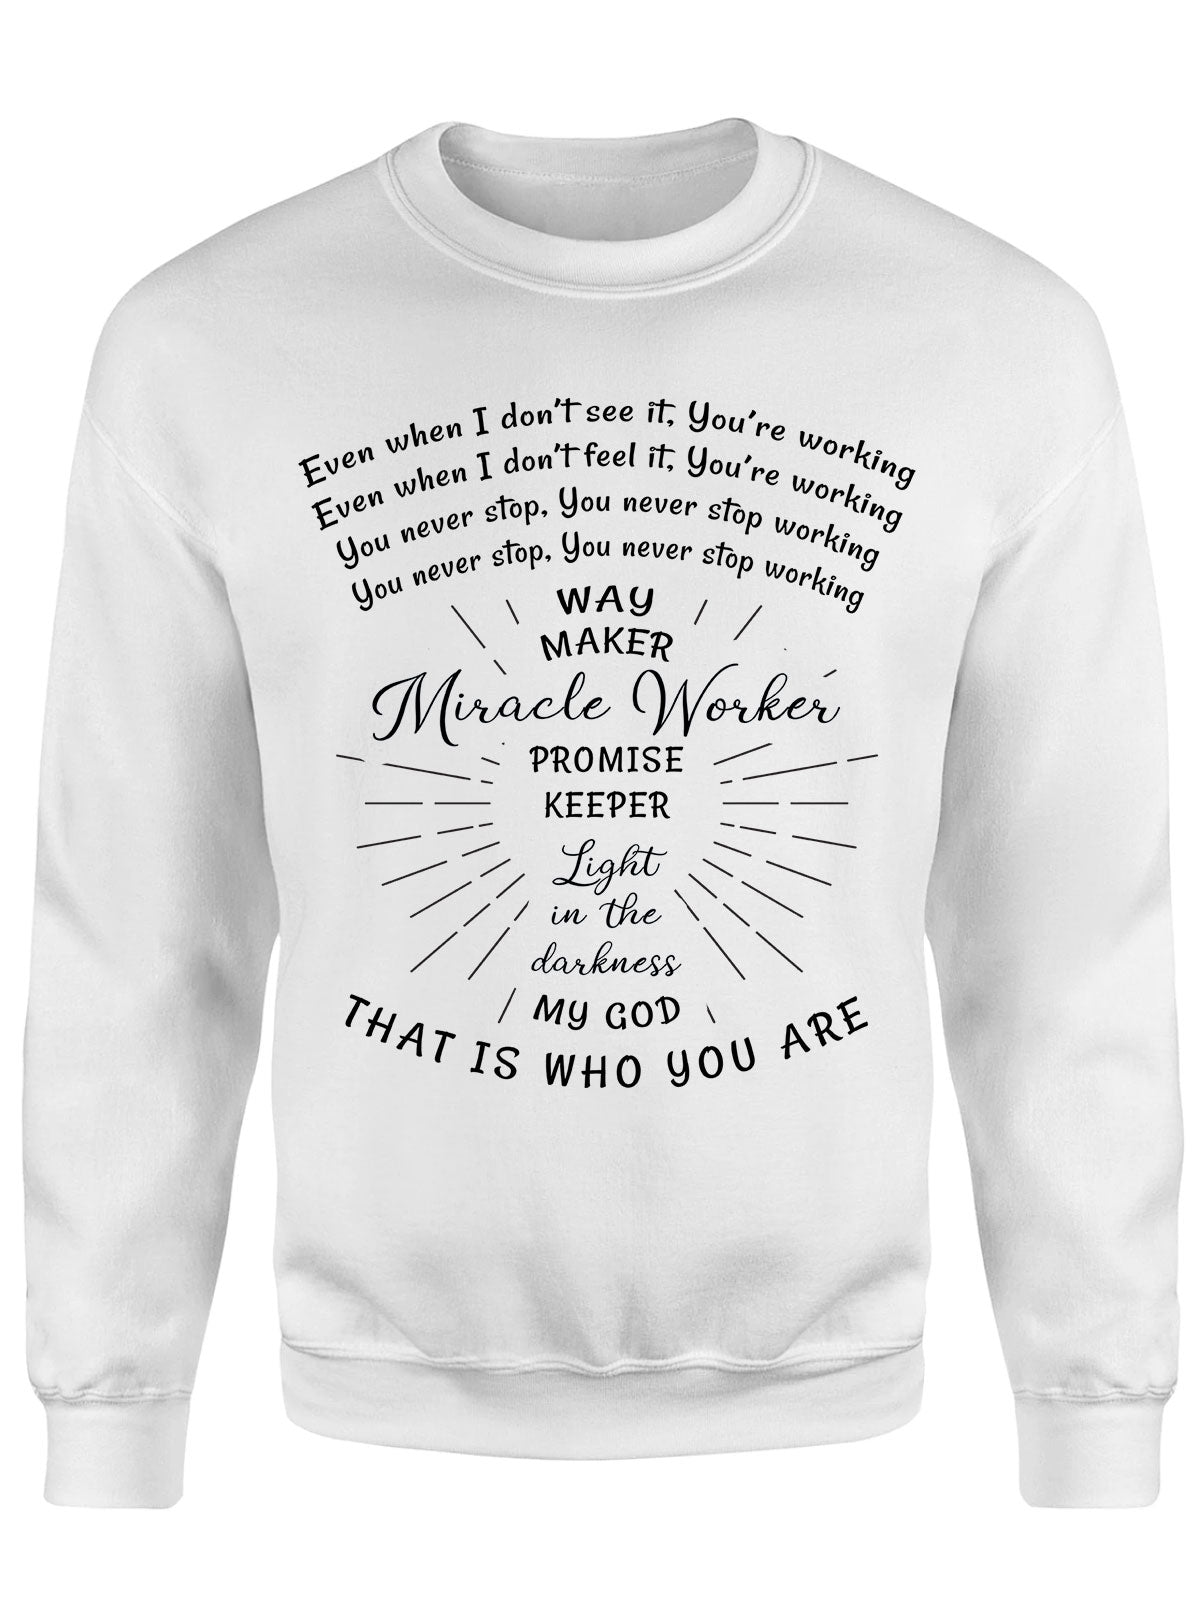 Crew Neck Sweatshirt - Way Maker, Miracle Worker - Christian Sweatshirt